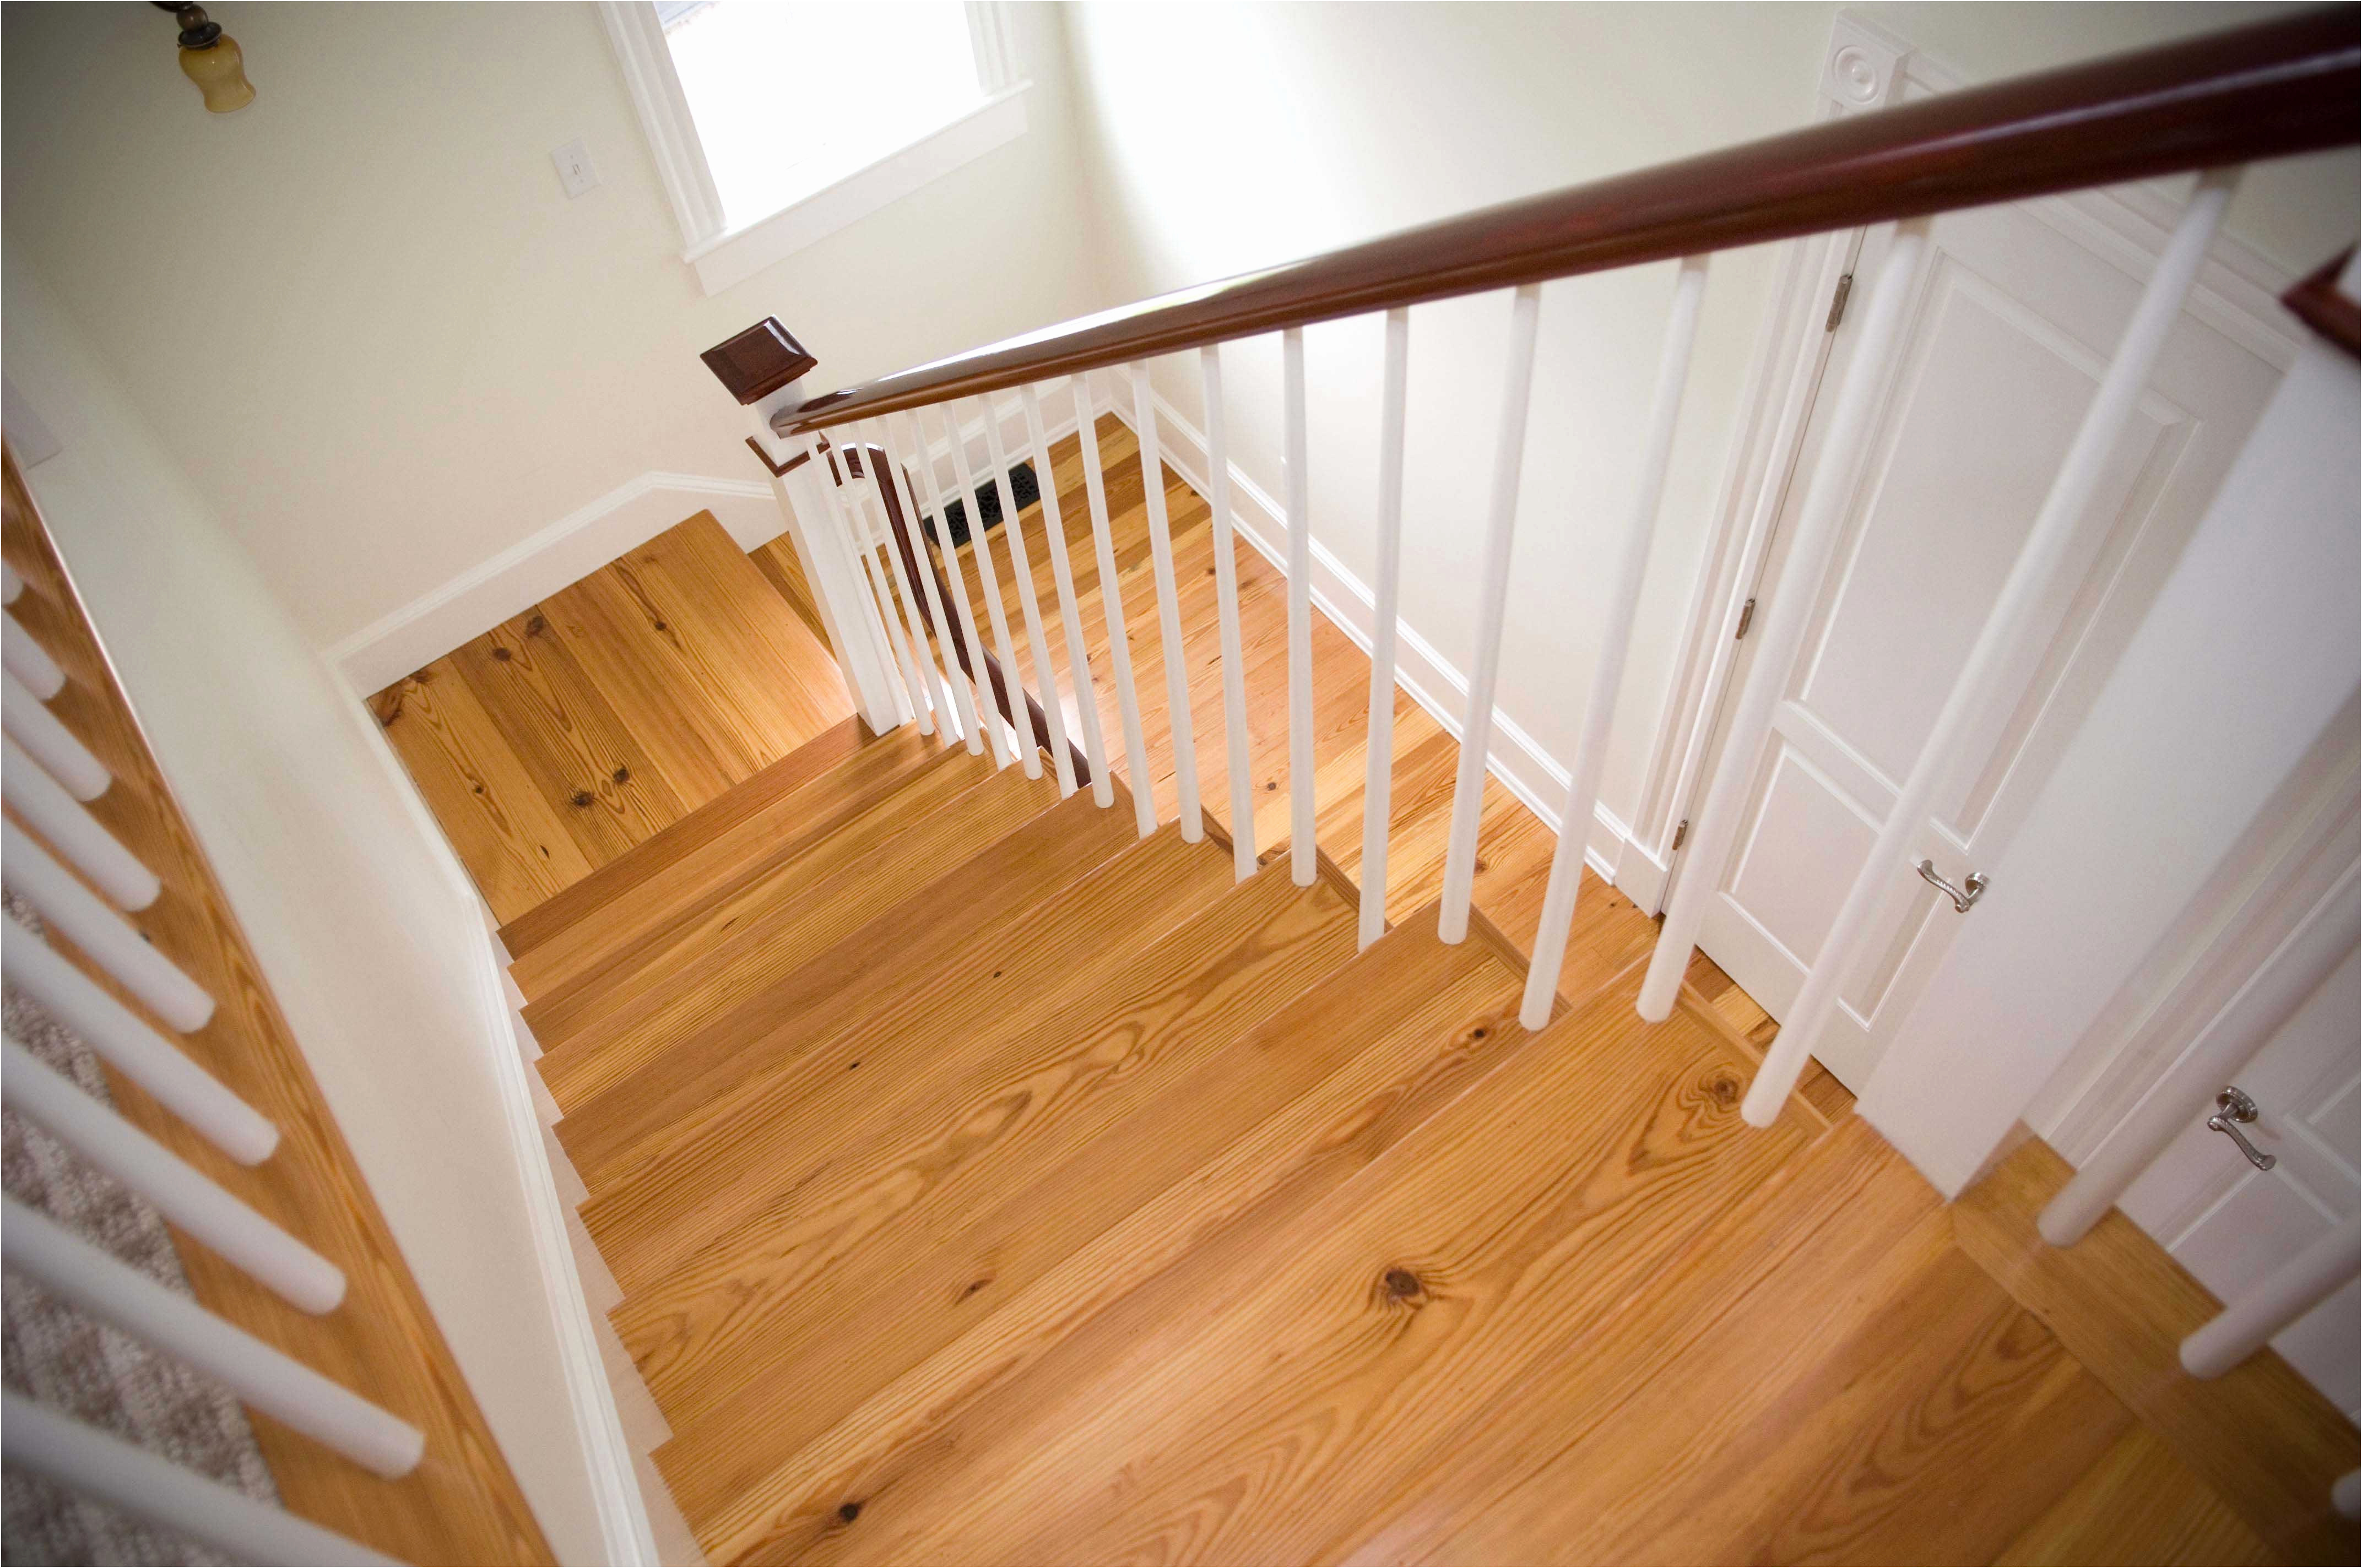 graphite maple hardwood flooring of bamboo stair treads canada fresh 1 2 x 3 1 4 graphite maple within bamboo stair treads canada luxury 50 lovely hardwood floor stairs images 50 photos home improvement